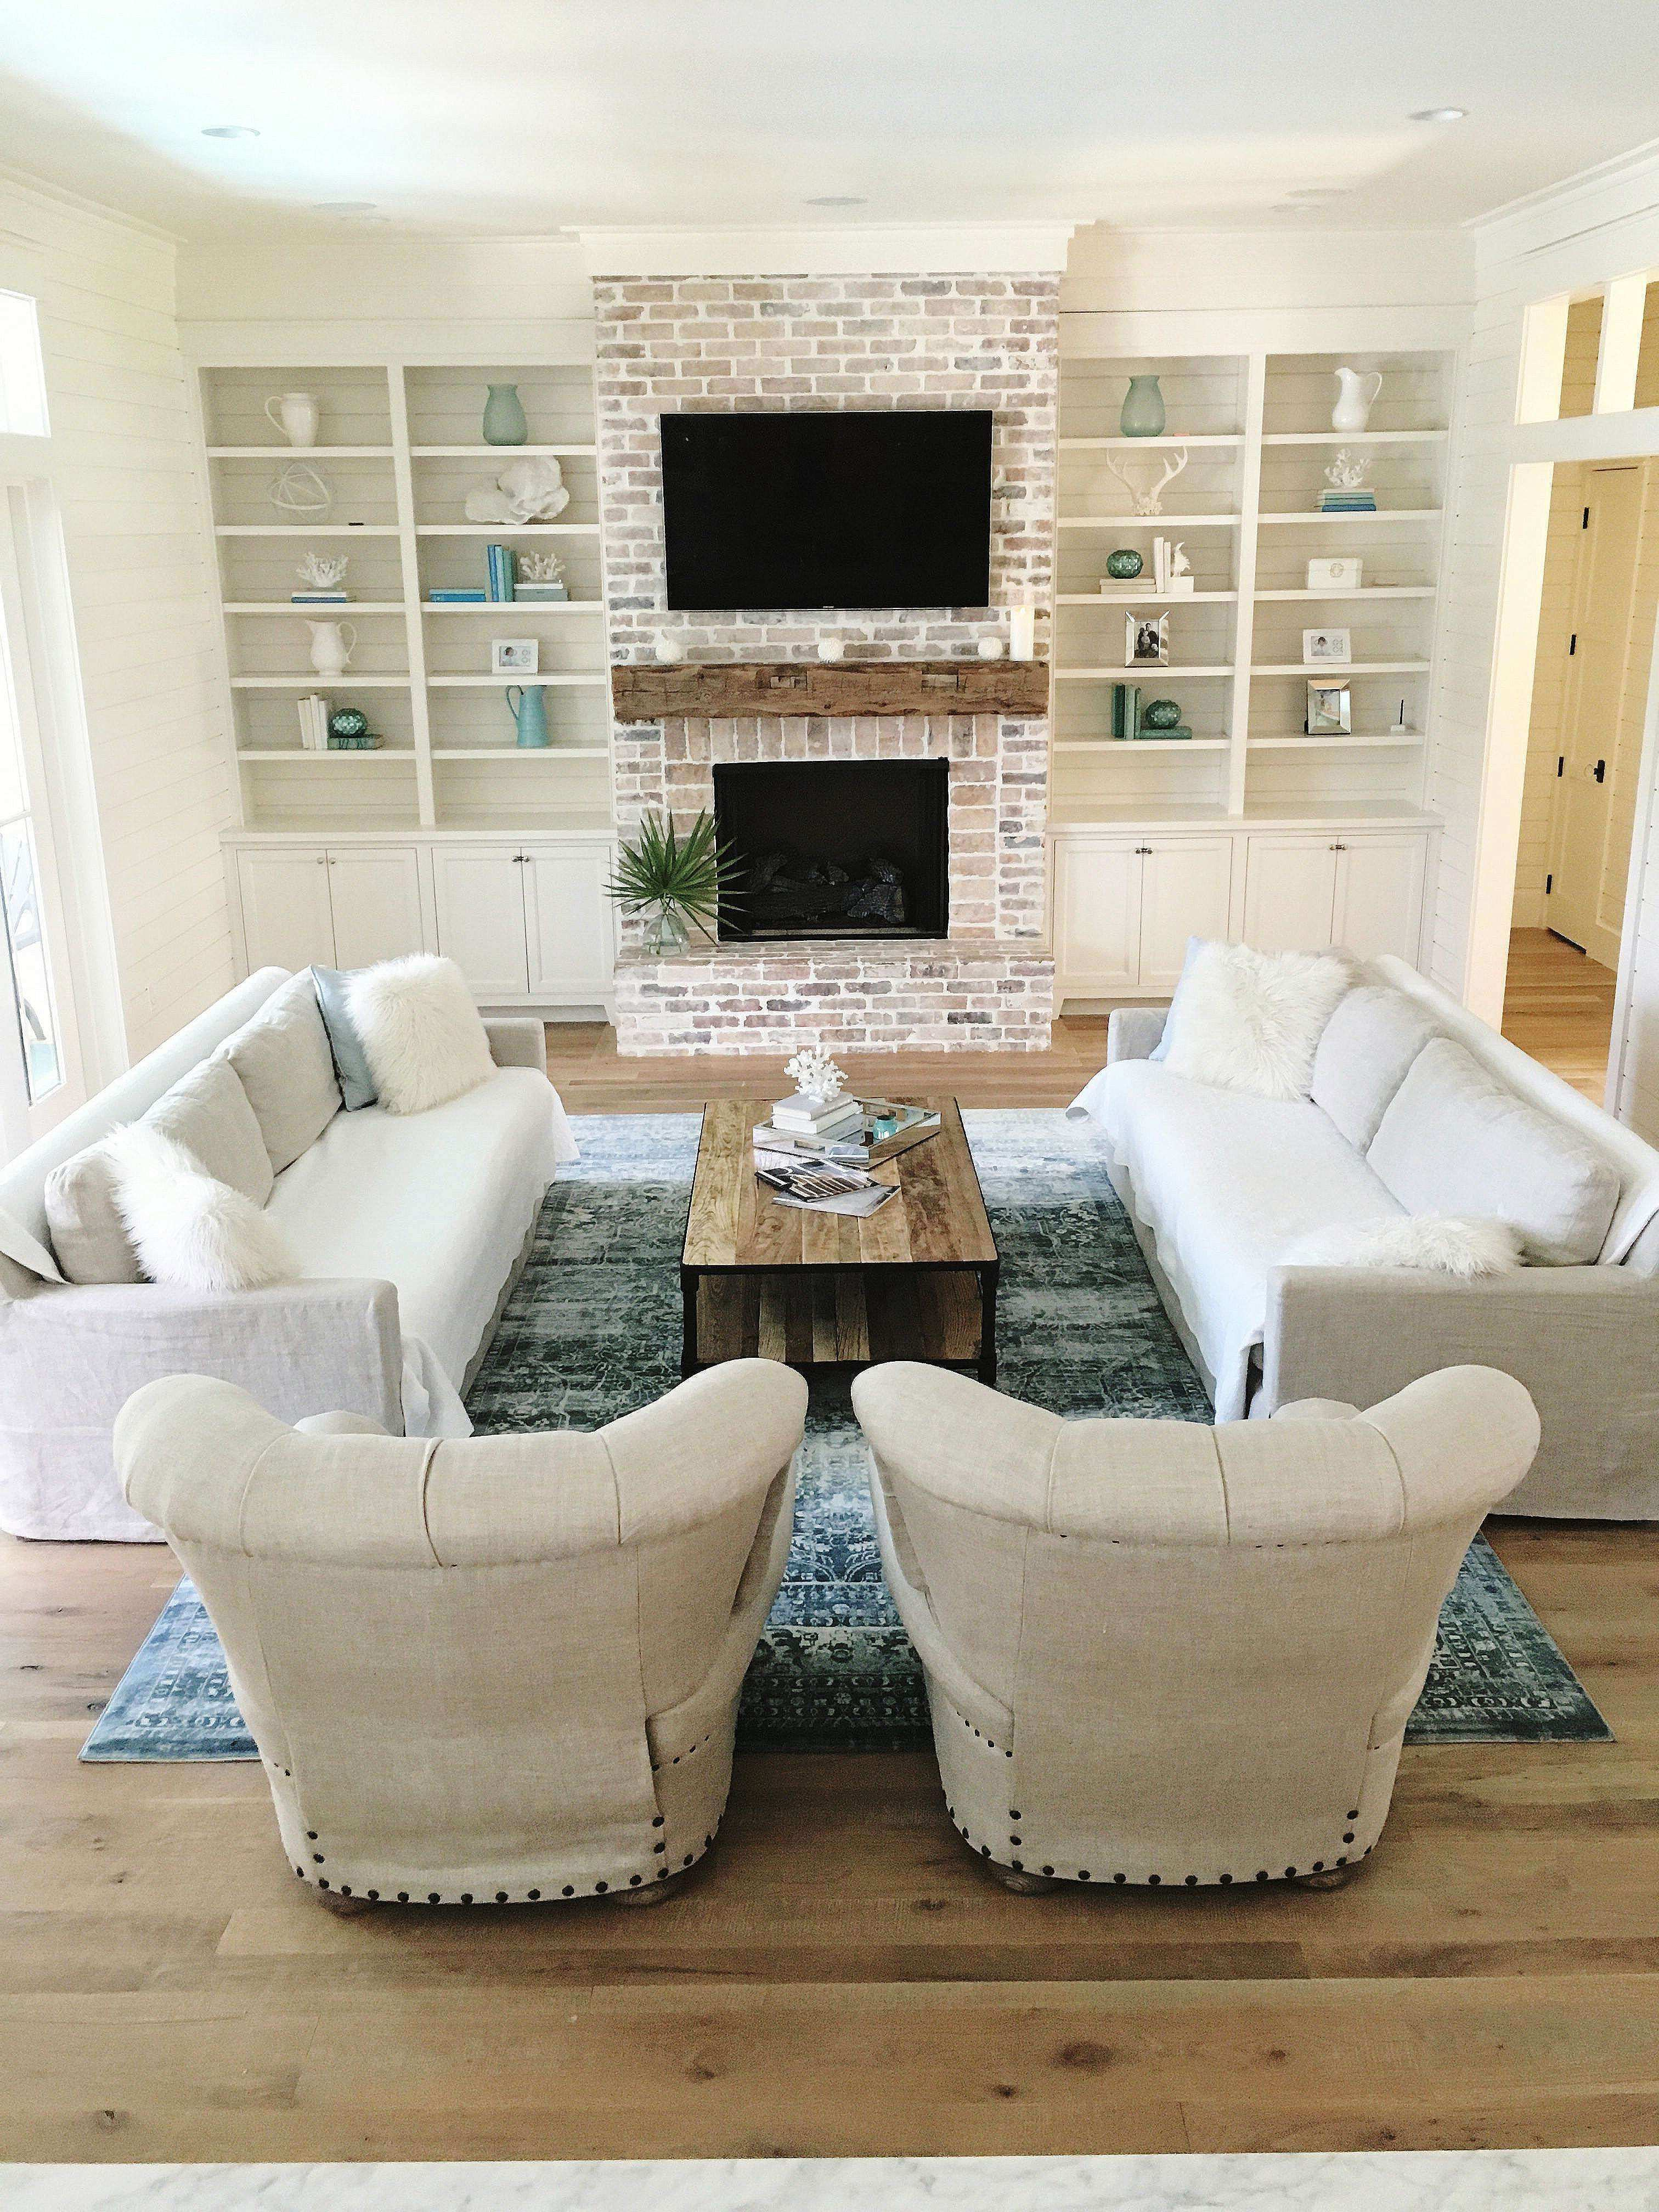 Table for Behind Couch Design Ideas Good Modern Living Room